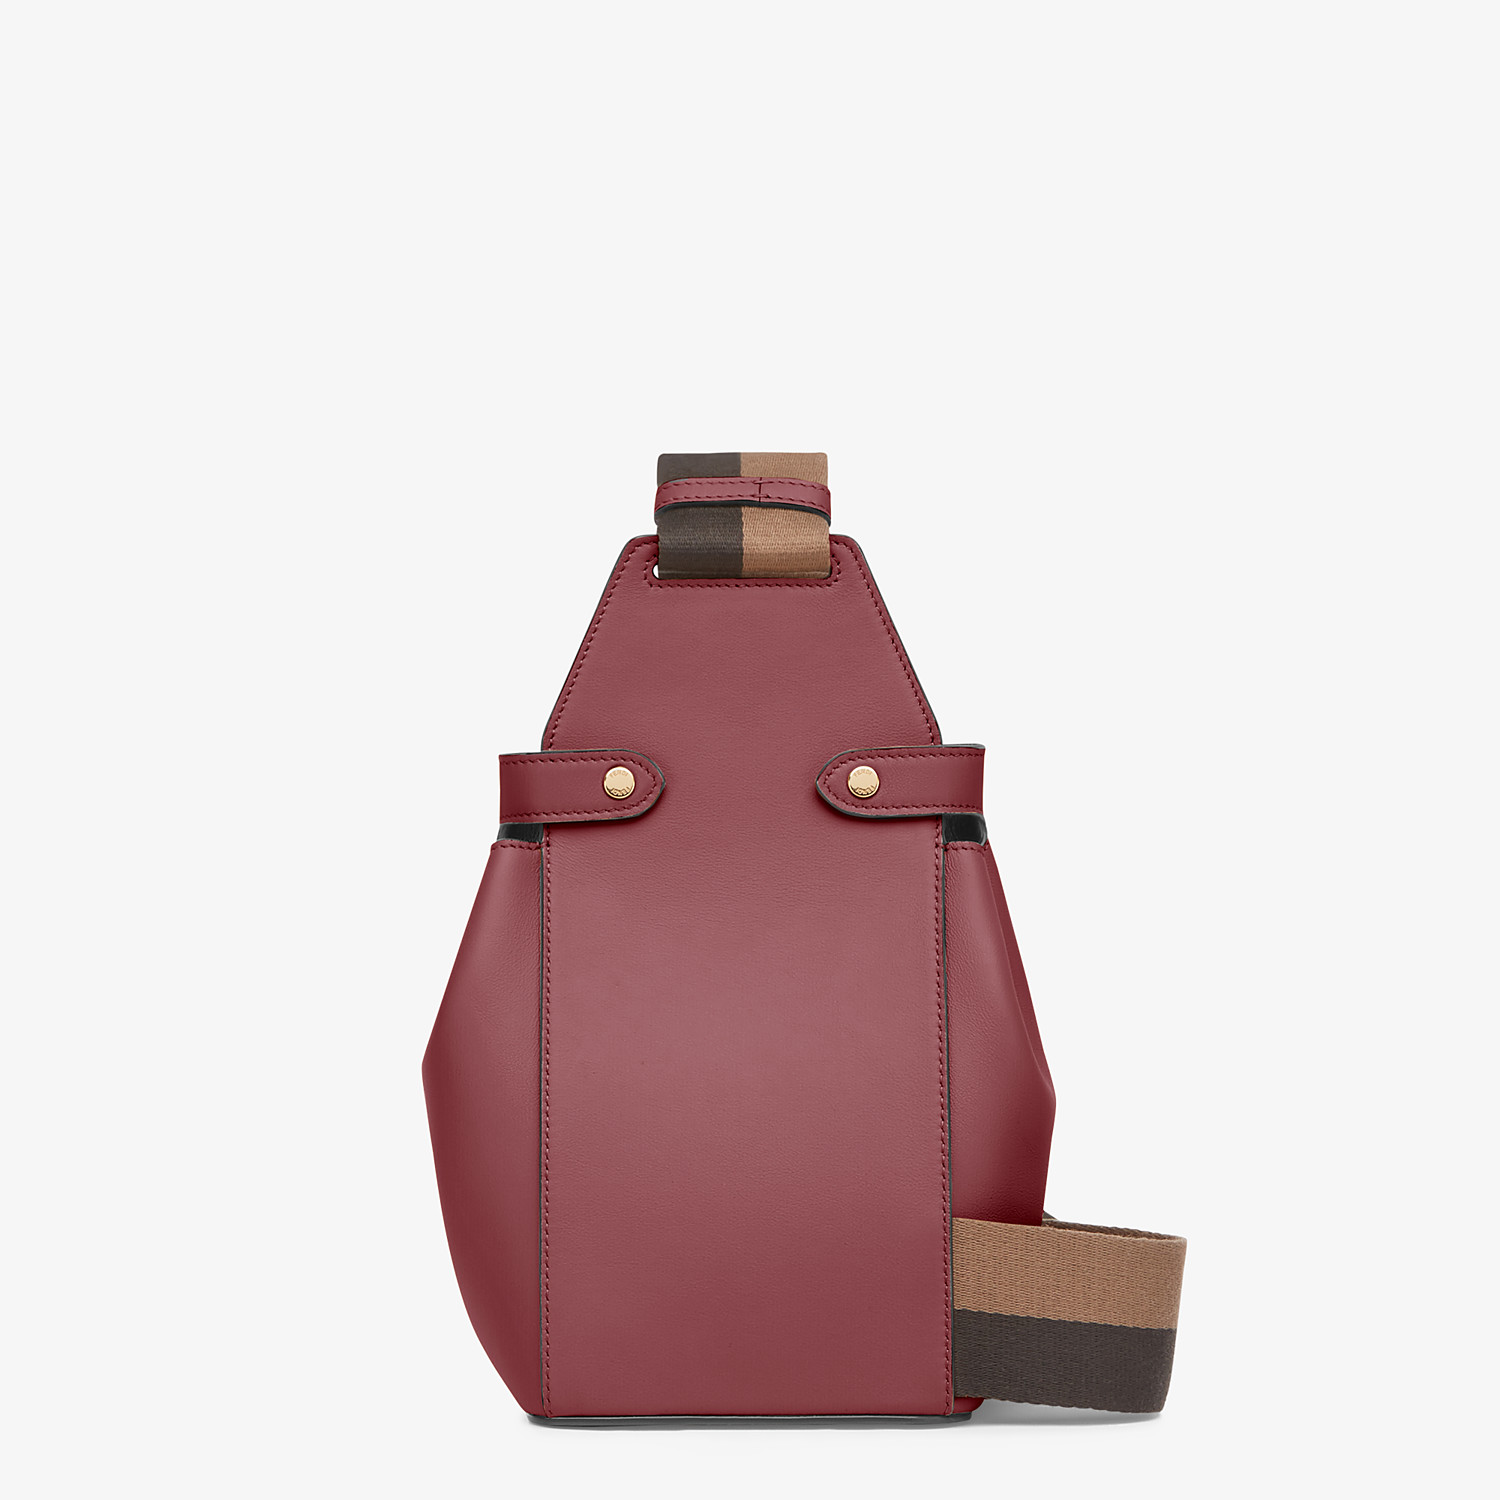 FENDI GUITAR BAG - Burgundy leather mini-bag - view 3 detail